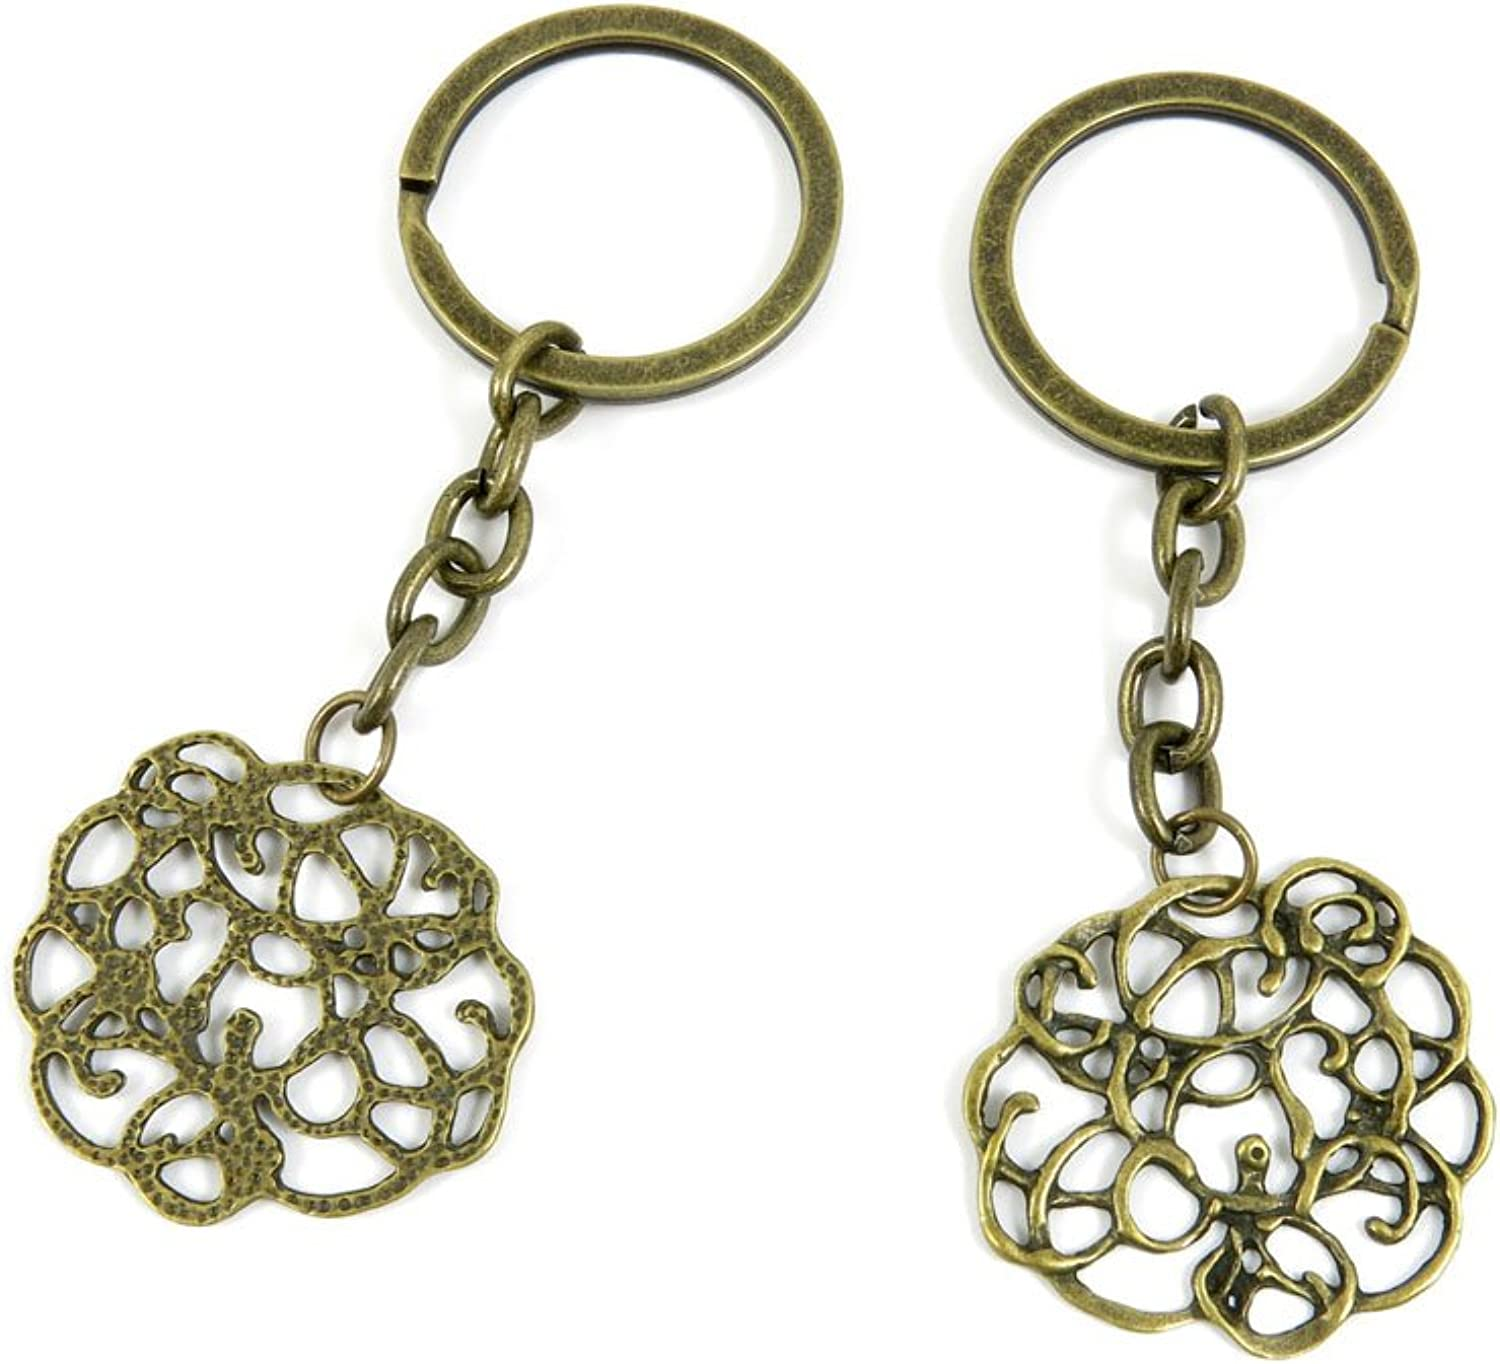 100 PCS Keyrings Keychains Key Ring Chains Tags Jewelry Findings Clasps Buckles Supplies F1VK7 Flower Vine